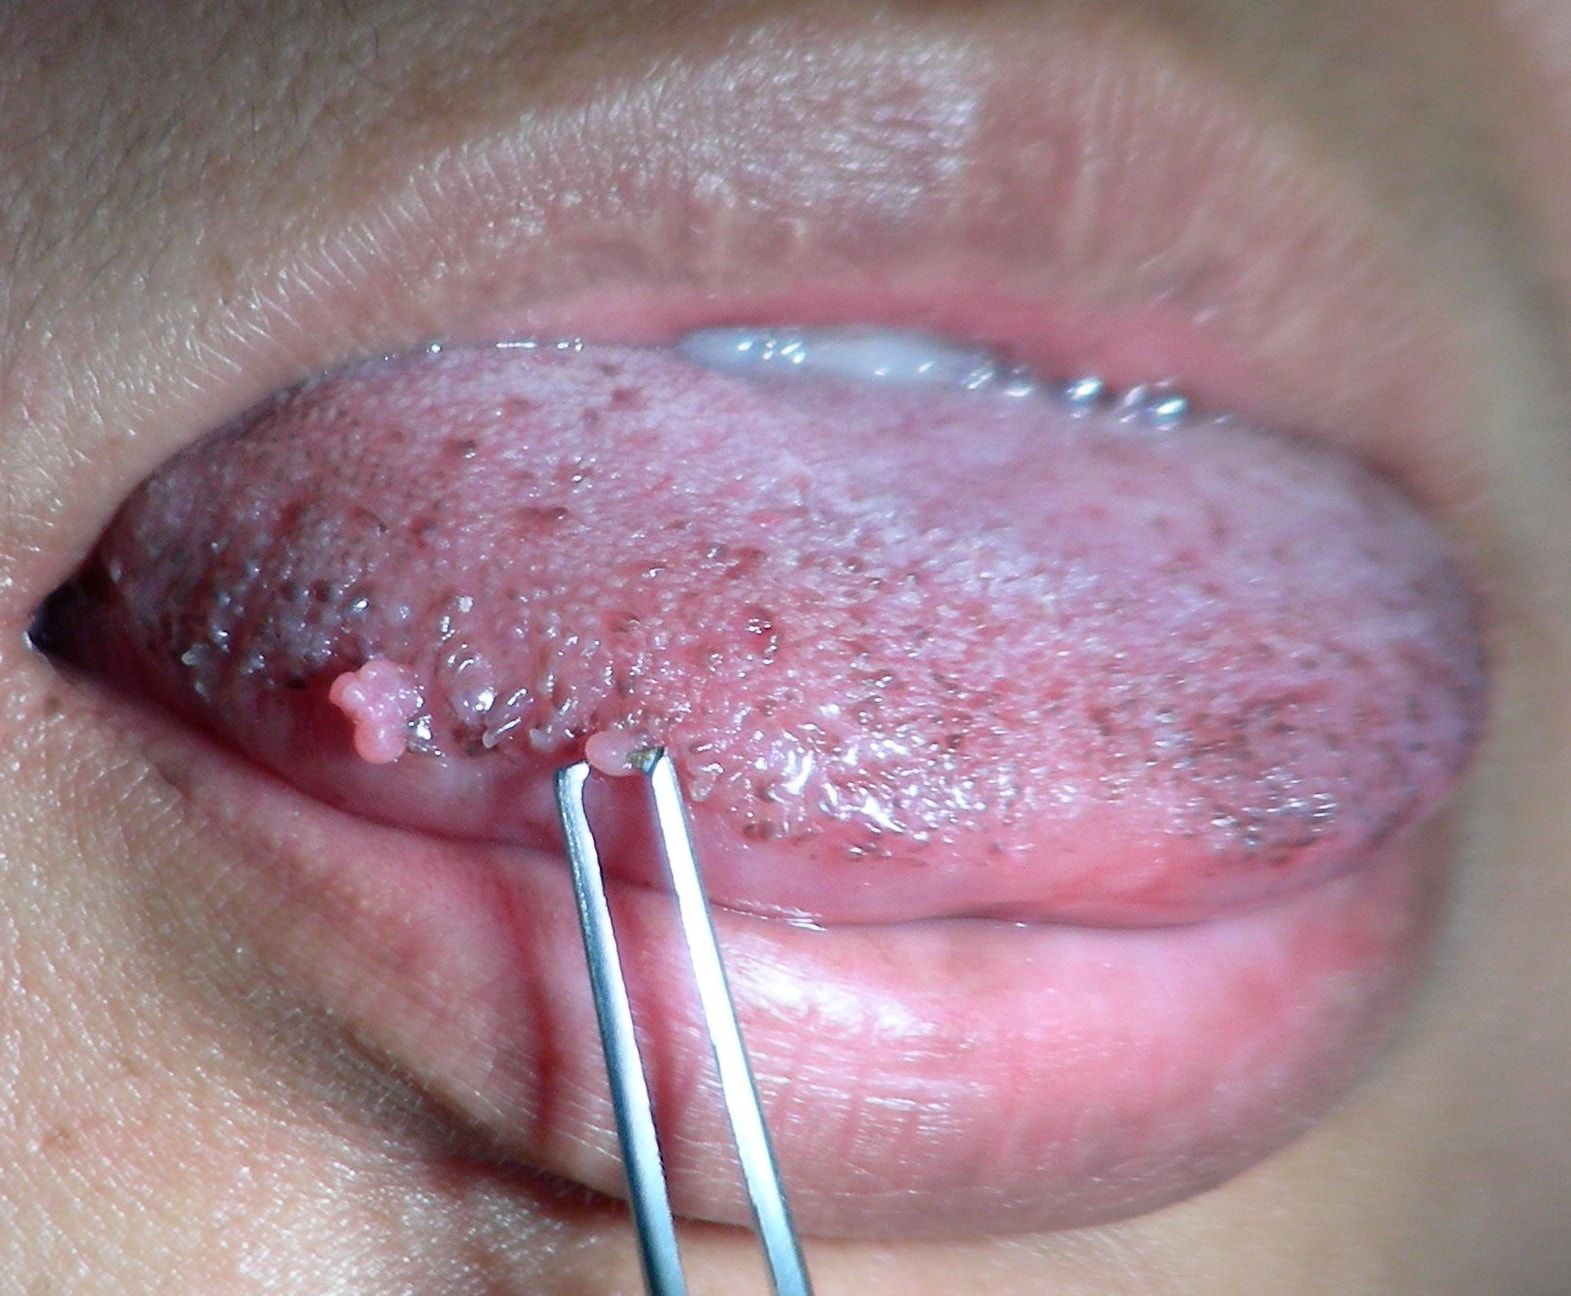 These small papillomas on the lateral tongue of a young woman showed